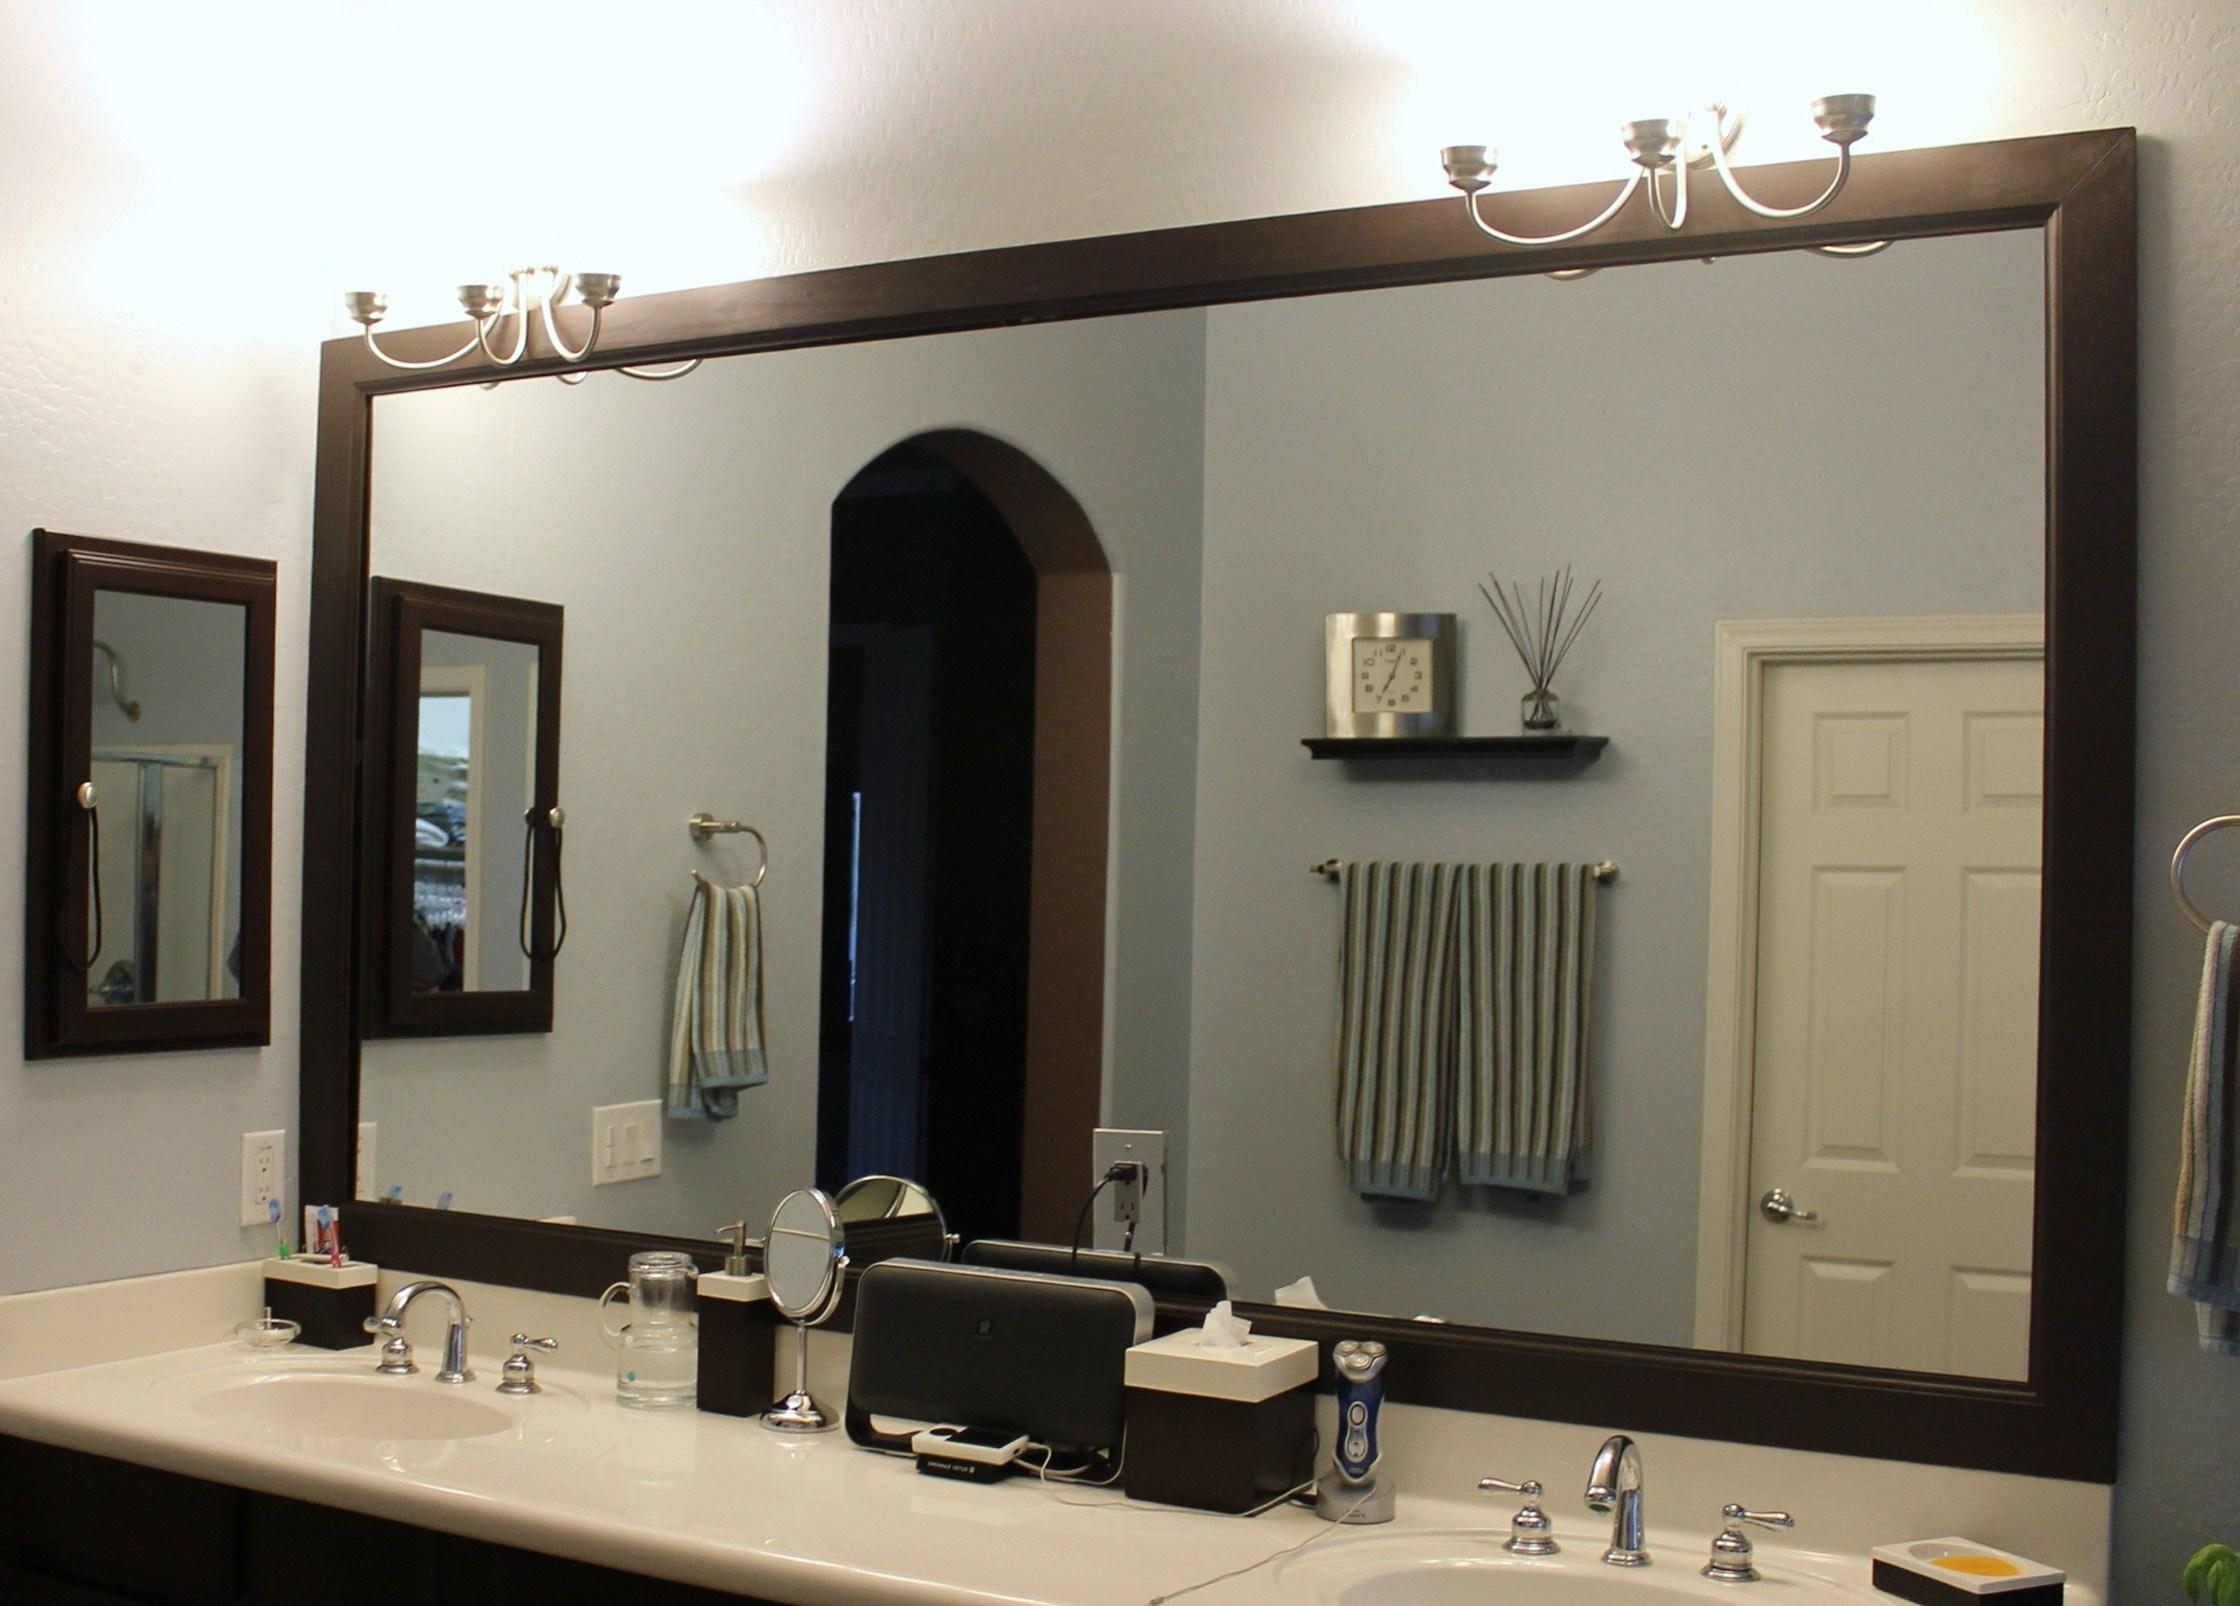 Bathroom : Beautiful Bathroom Mirror Ideas For A Small Bathroom Intended For Decorative Mirrors For Bathroom Vanity (Image 2 of 20)